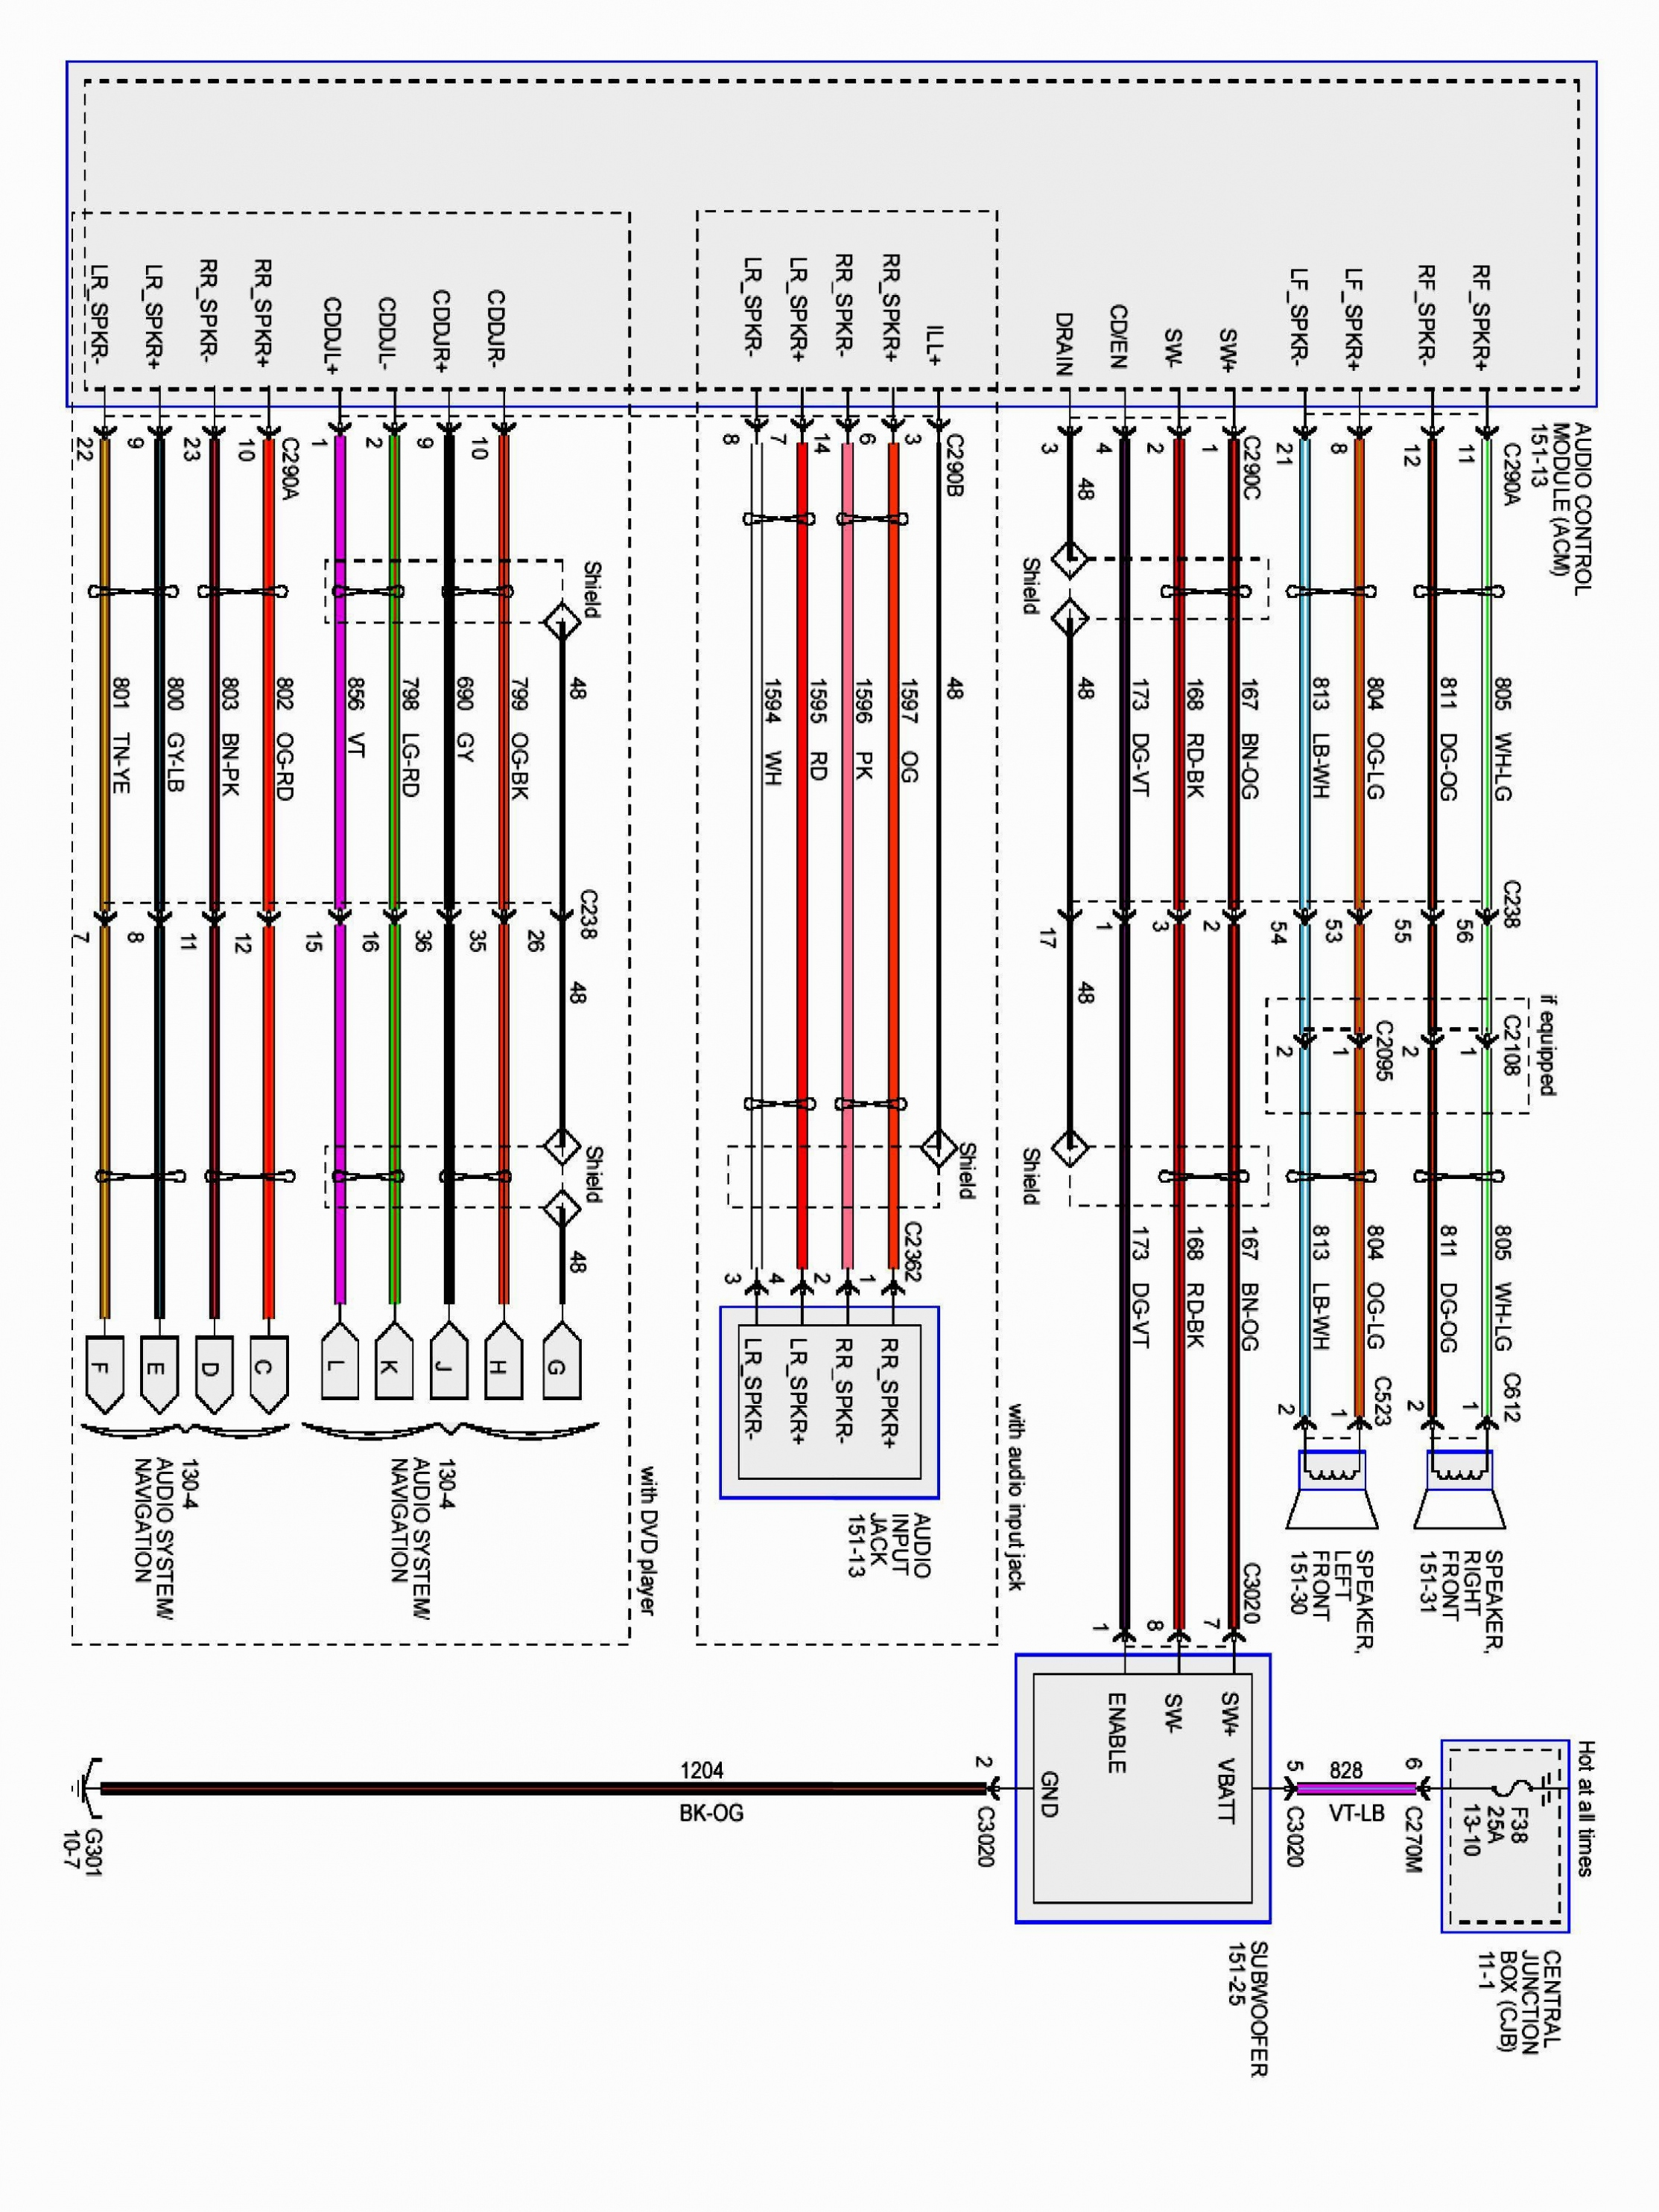 2002 Ford F 150 Window Wiring Diagram | Wiring Diagram - 02 F350 Trailer Wiring Diagram